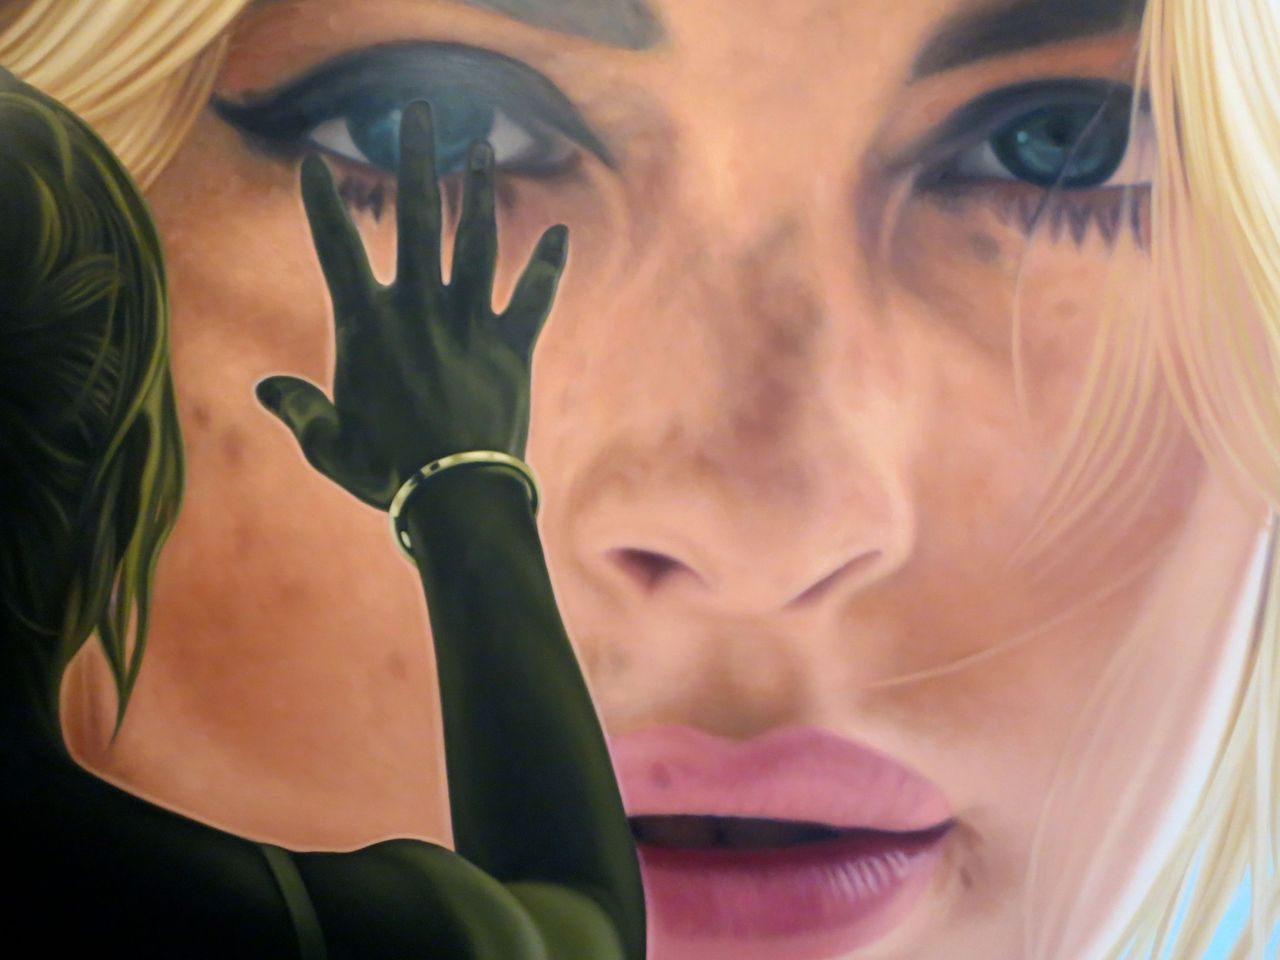 Can't wait until Richard Phillips opens at Gagosian next month. This is a tiny preview from his studio.